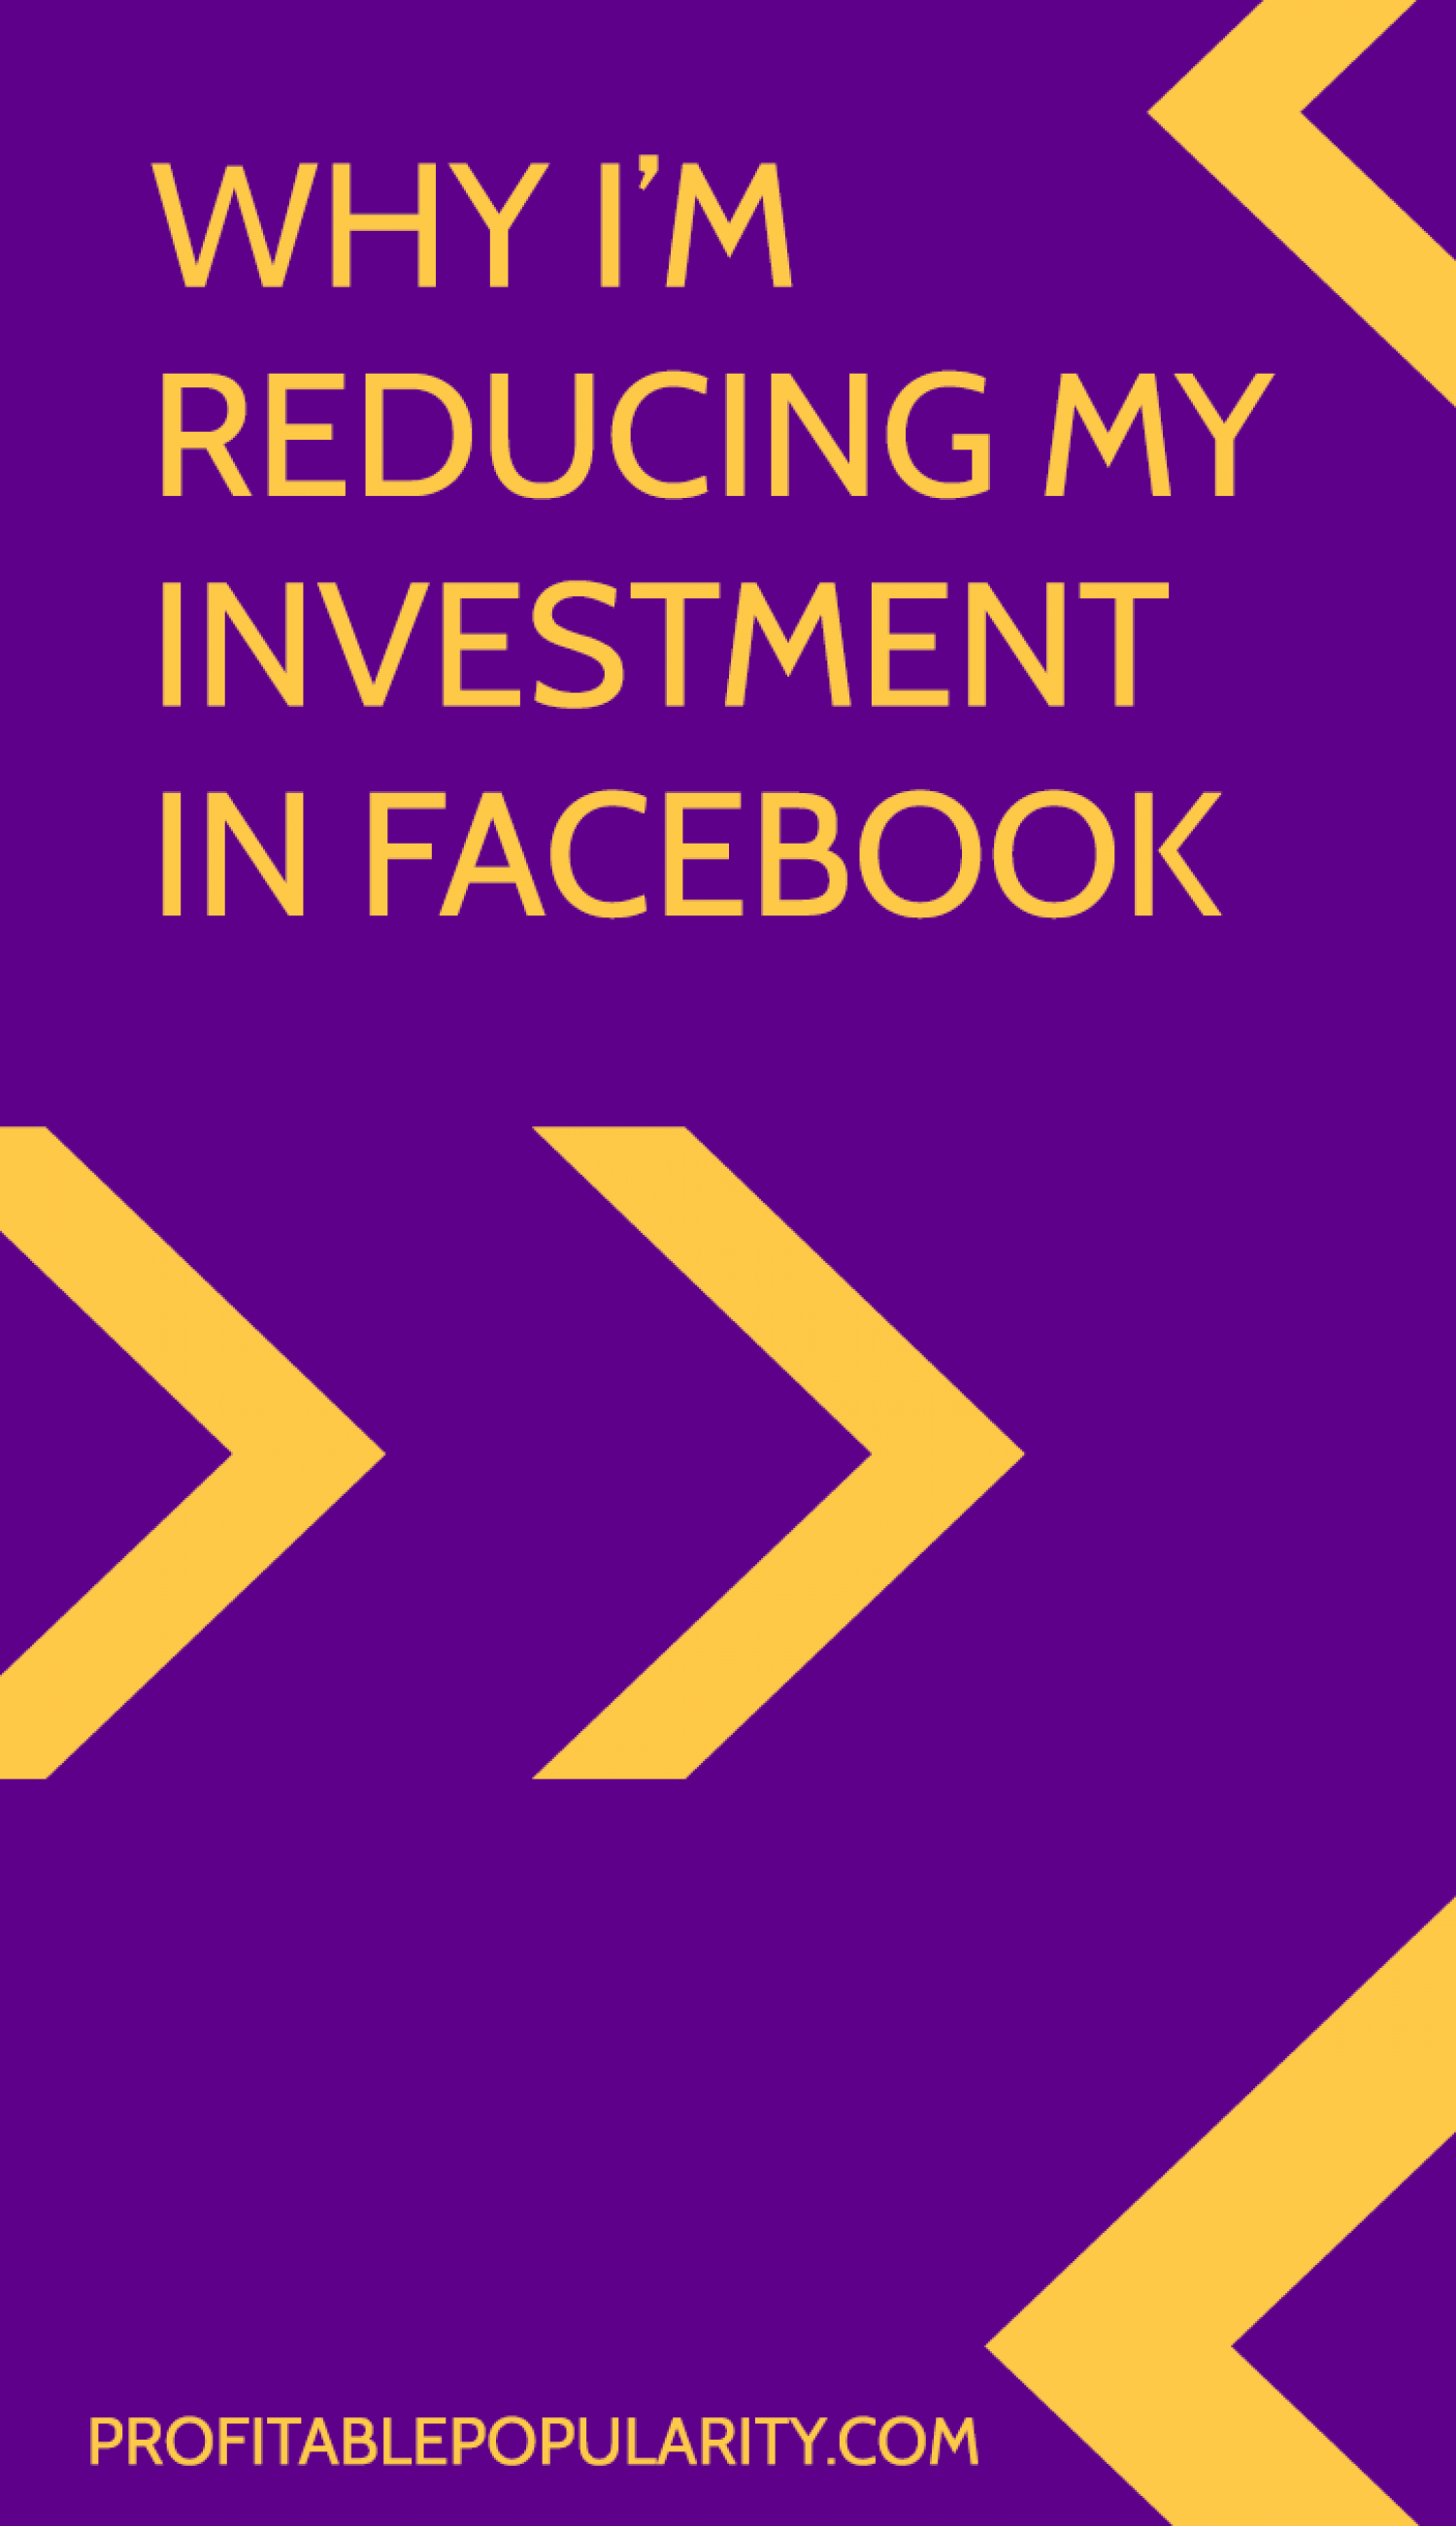 Why I'm Reducing My Investment in Facebook Infographic